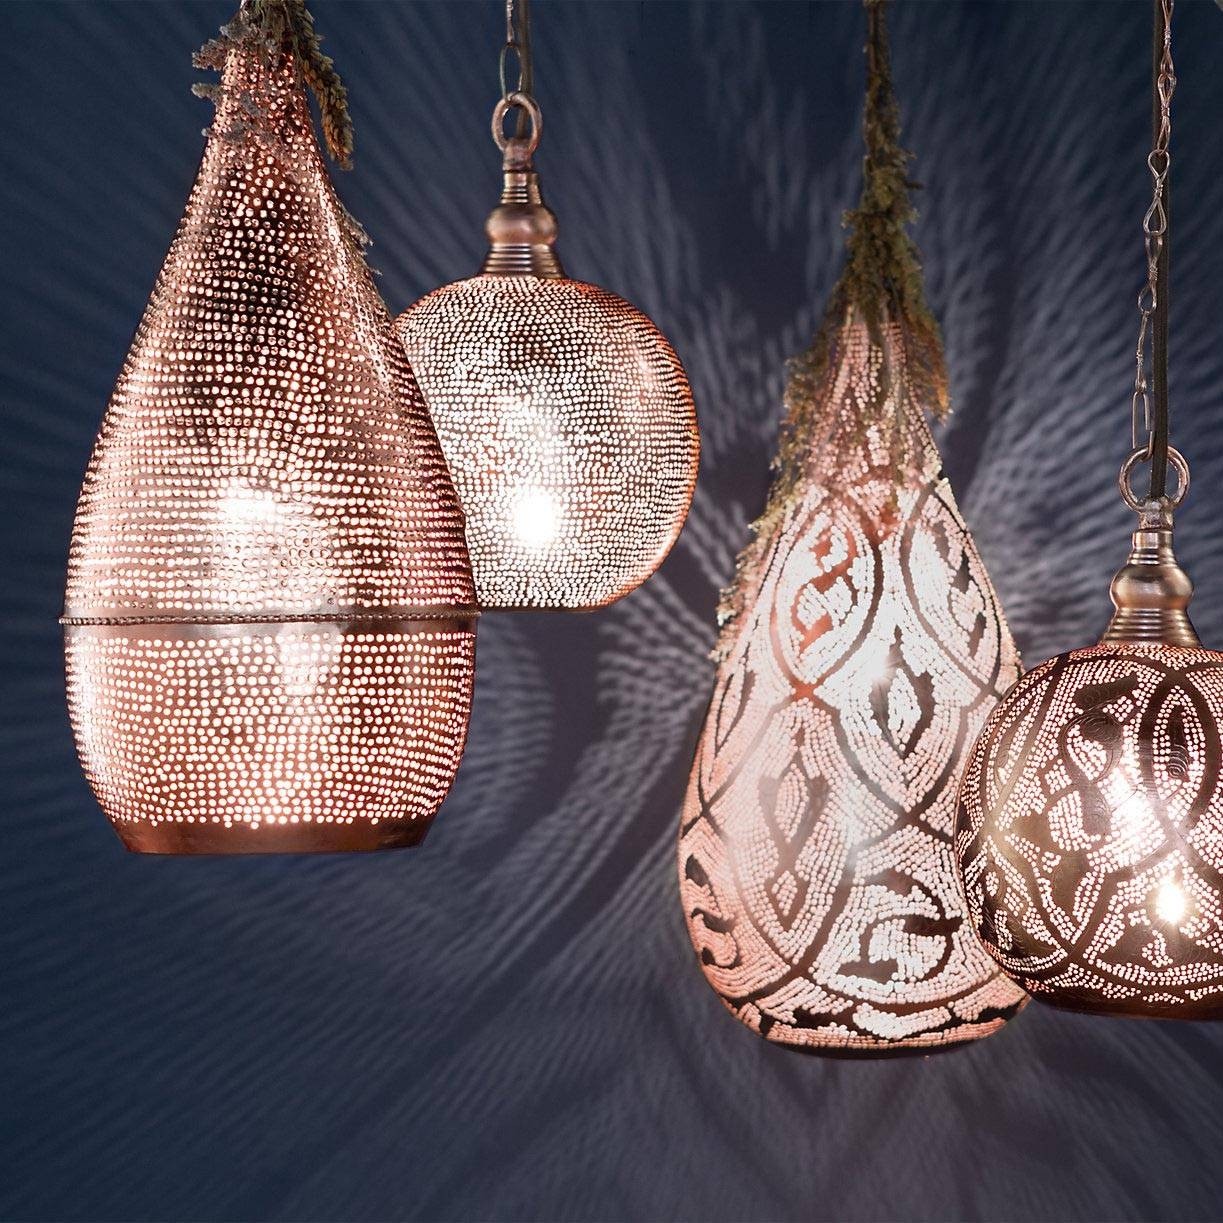 Moroccan Style Ceiling Light Shades | Light Fixtures Design Ideas intended for Moroccan Style Lights Shades (Image 13 of 15)